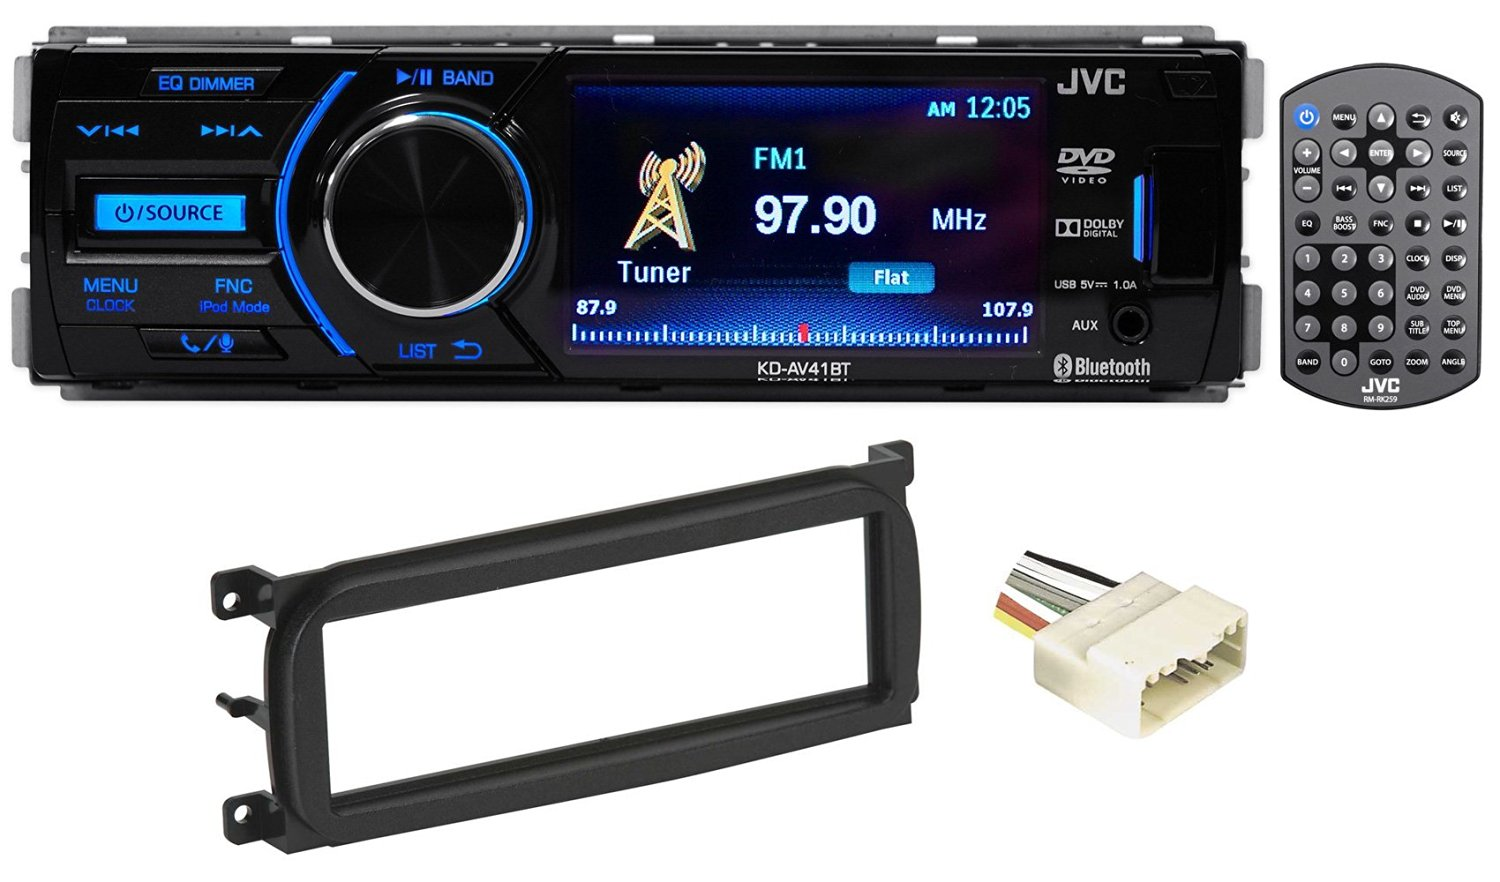 JVC KD-A845BT RECEIVER BLUETOOTH DRIVERS UPDATE